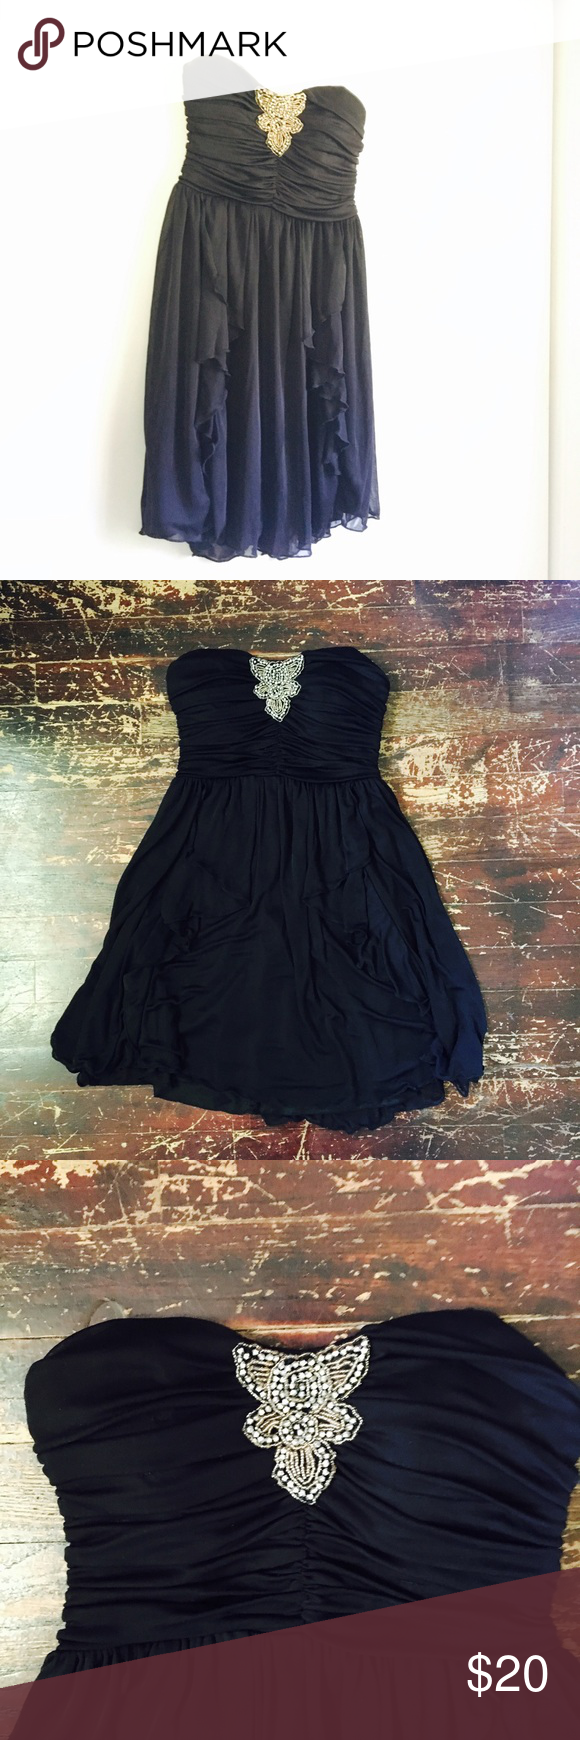 Black flowy dress black gold conditioning and nice